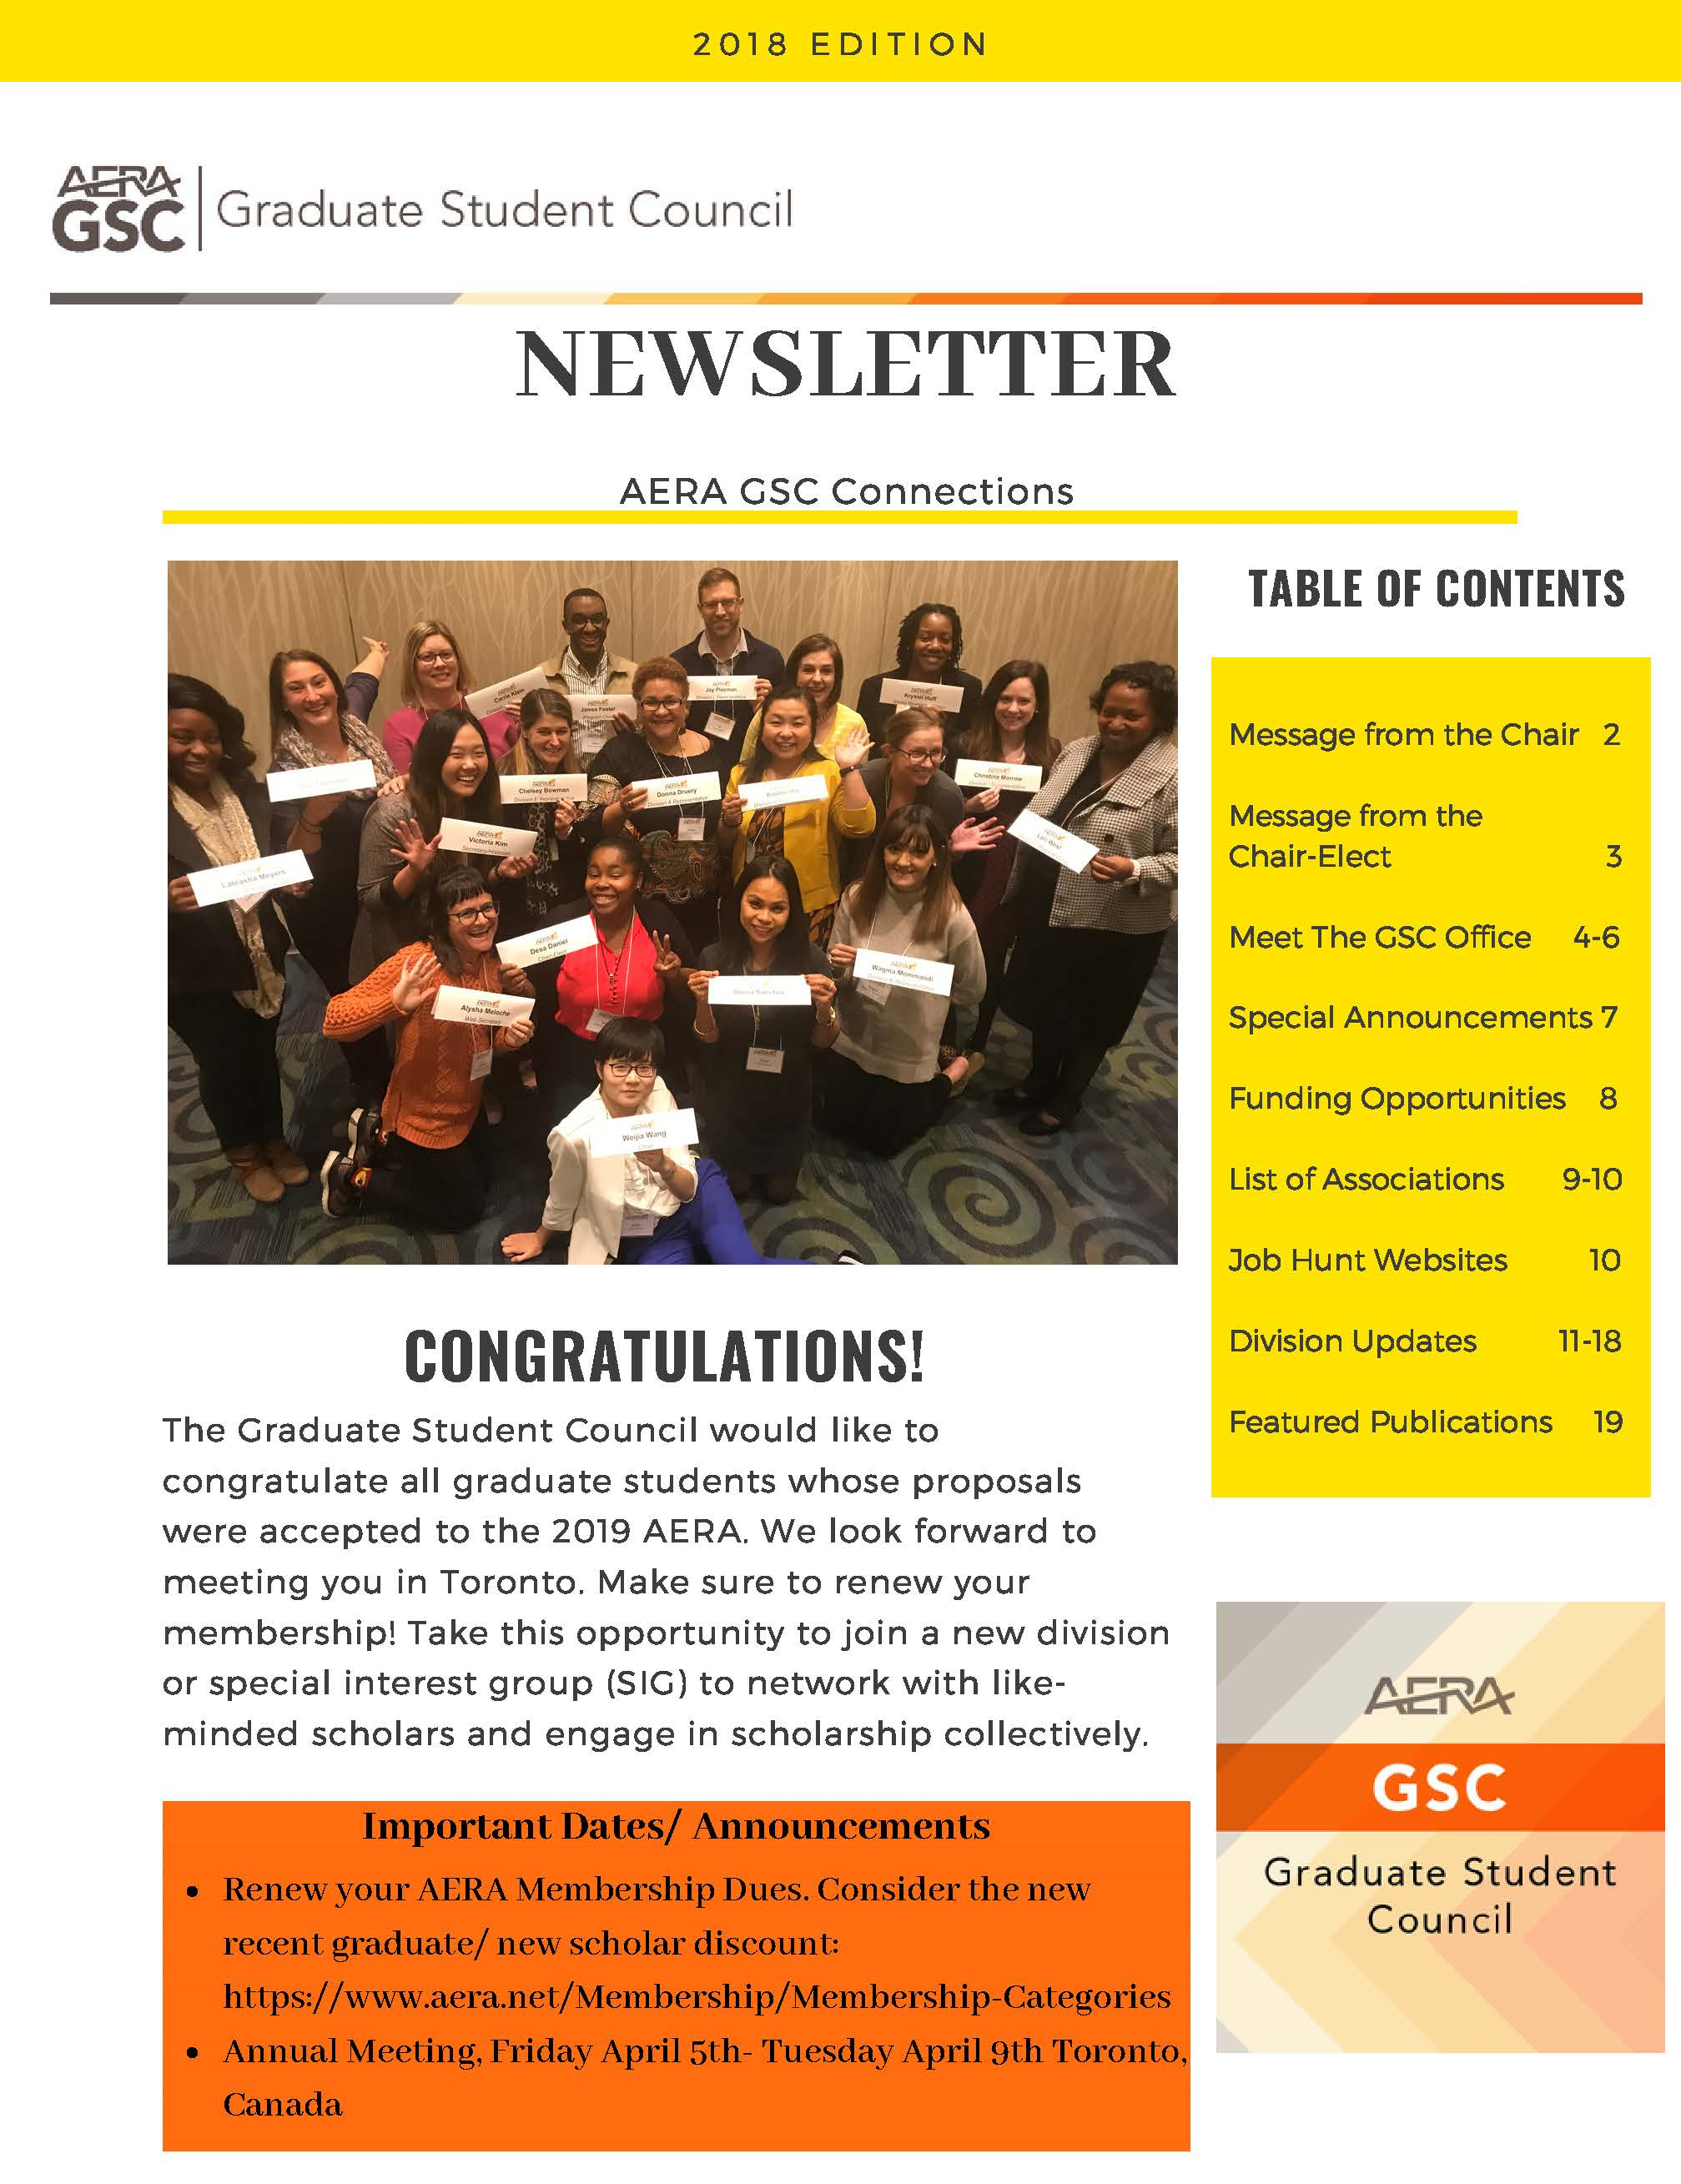 AERA GSC 2018 Newsletter_Page_01